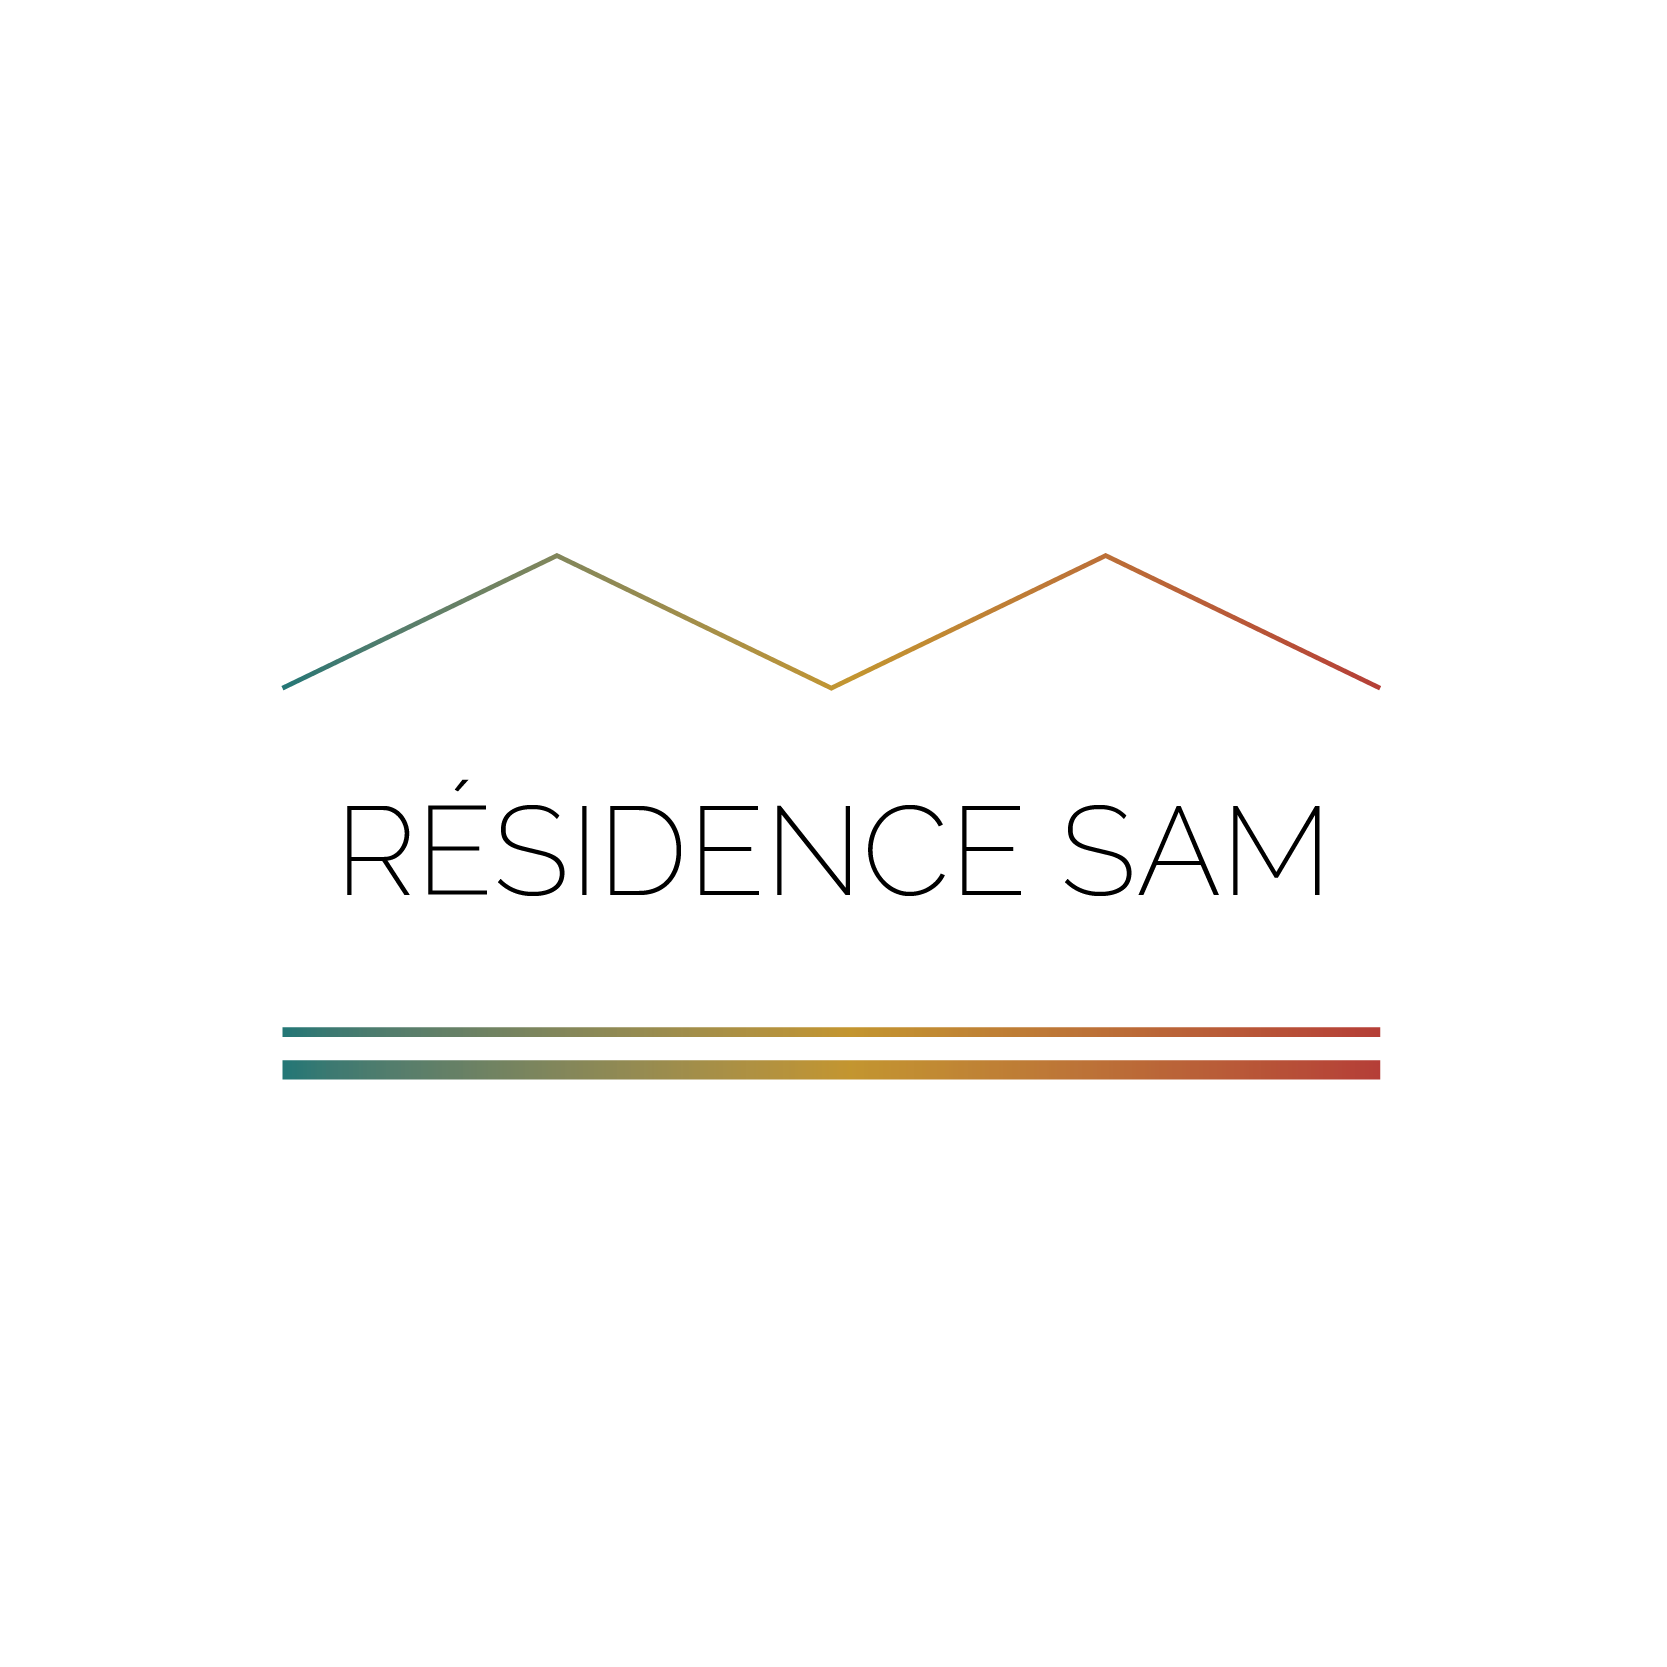 RÉSIDENTS SAM 2015